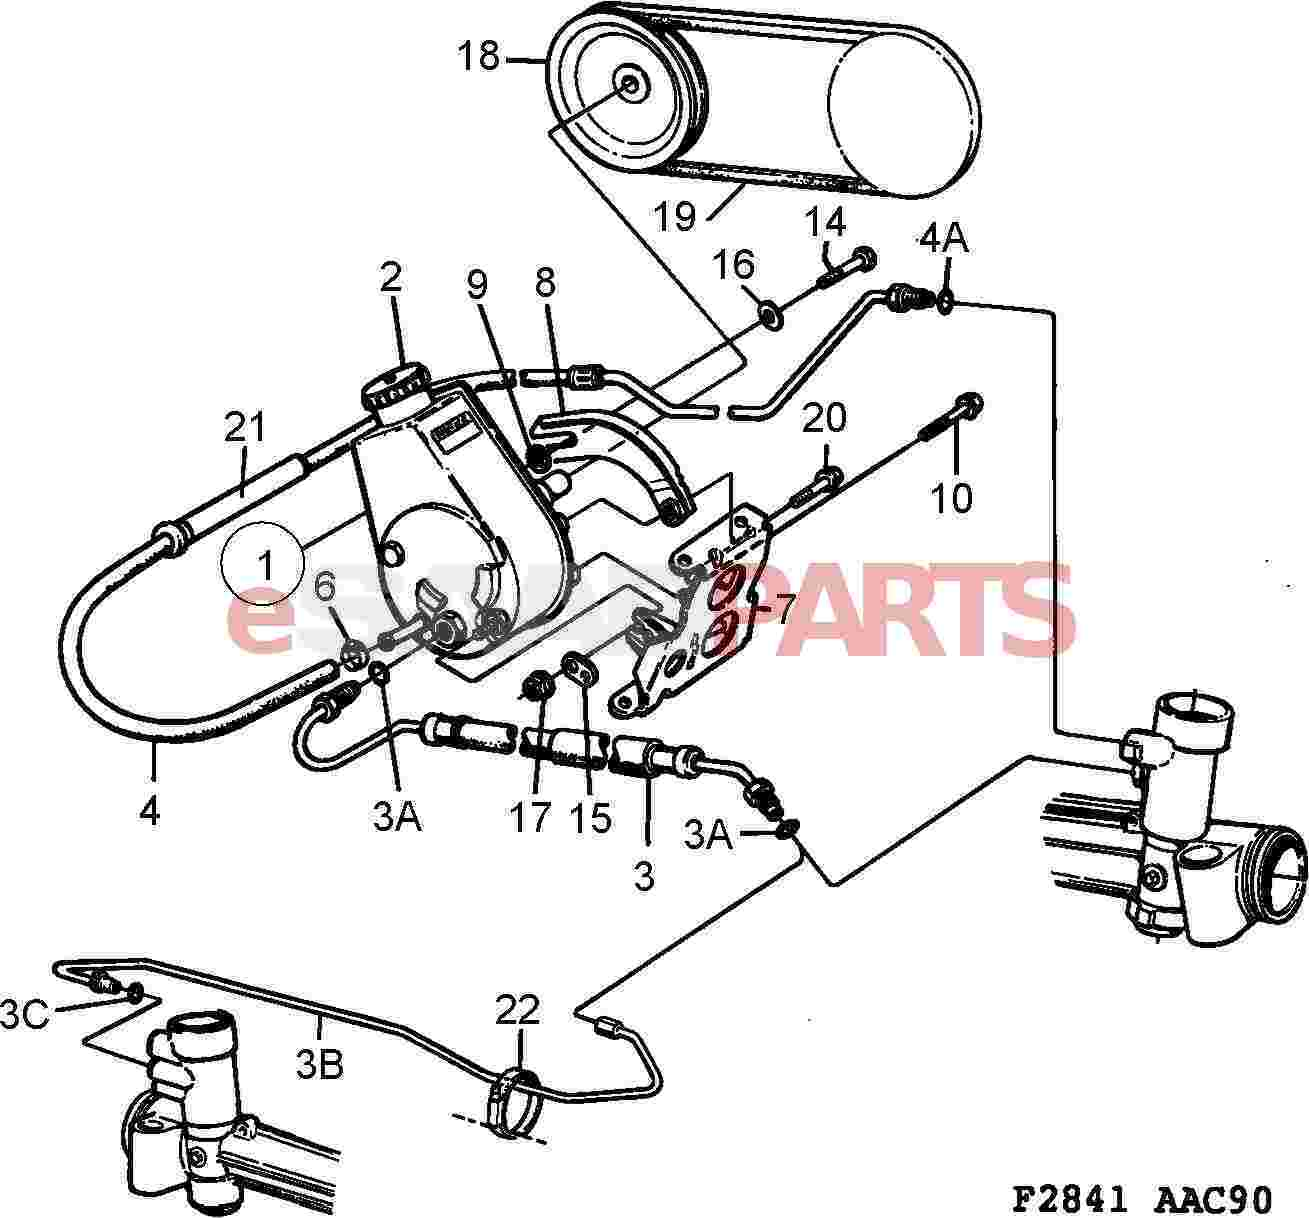 7977580 Saab O Ring Genuine Parts From 96 Ford Explorer Engine Diagram Image 4a